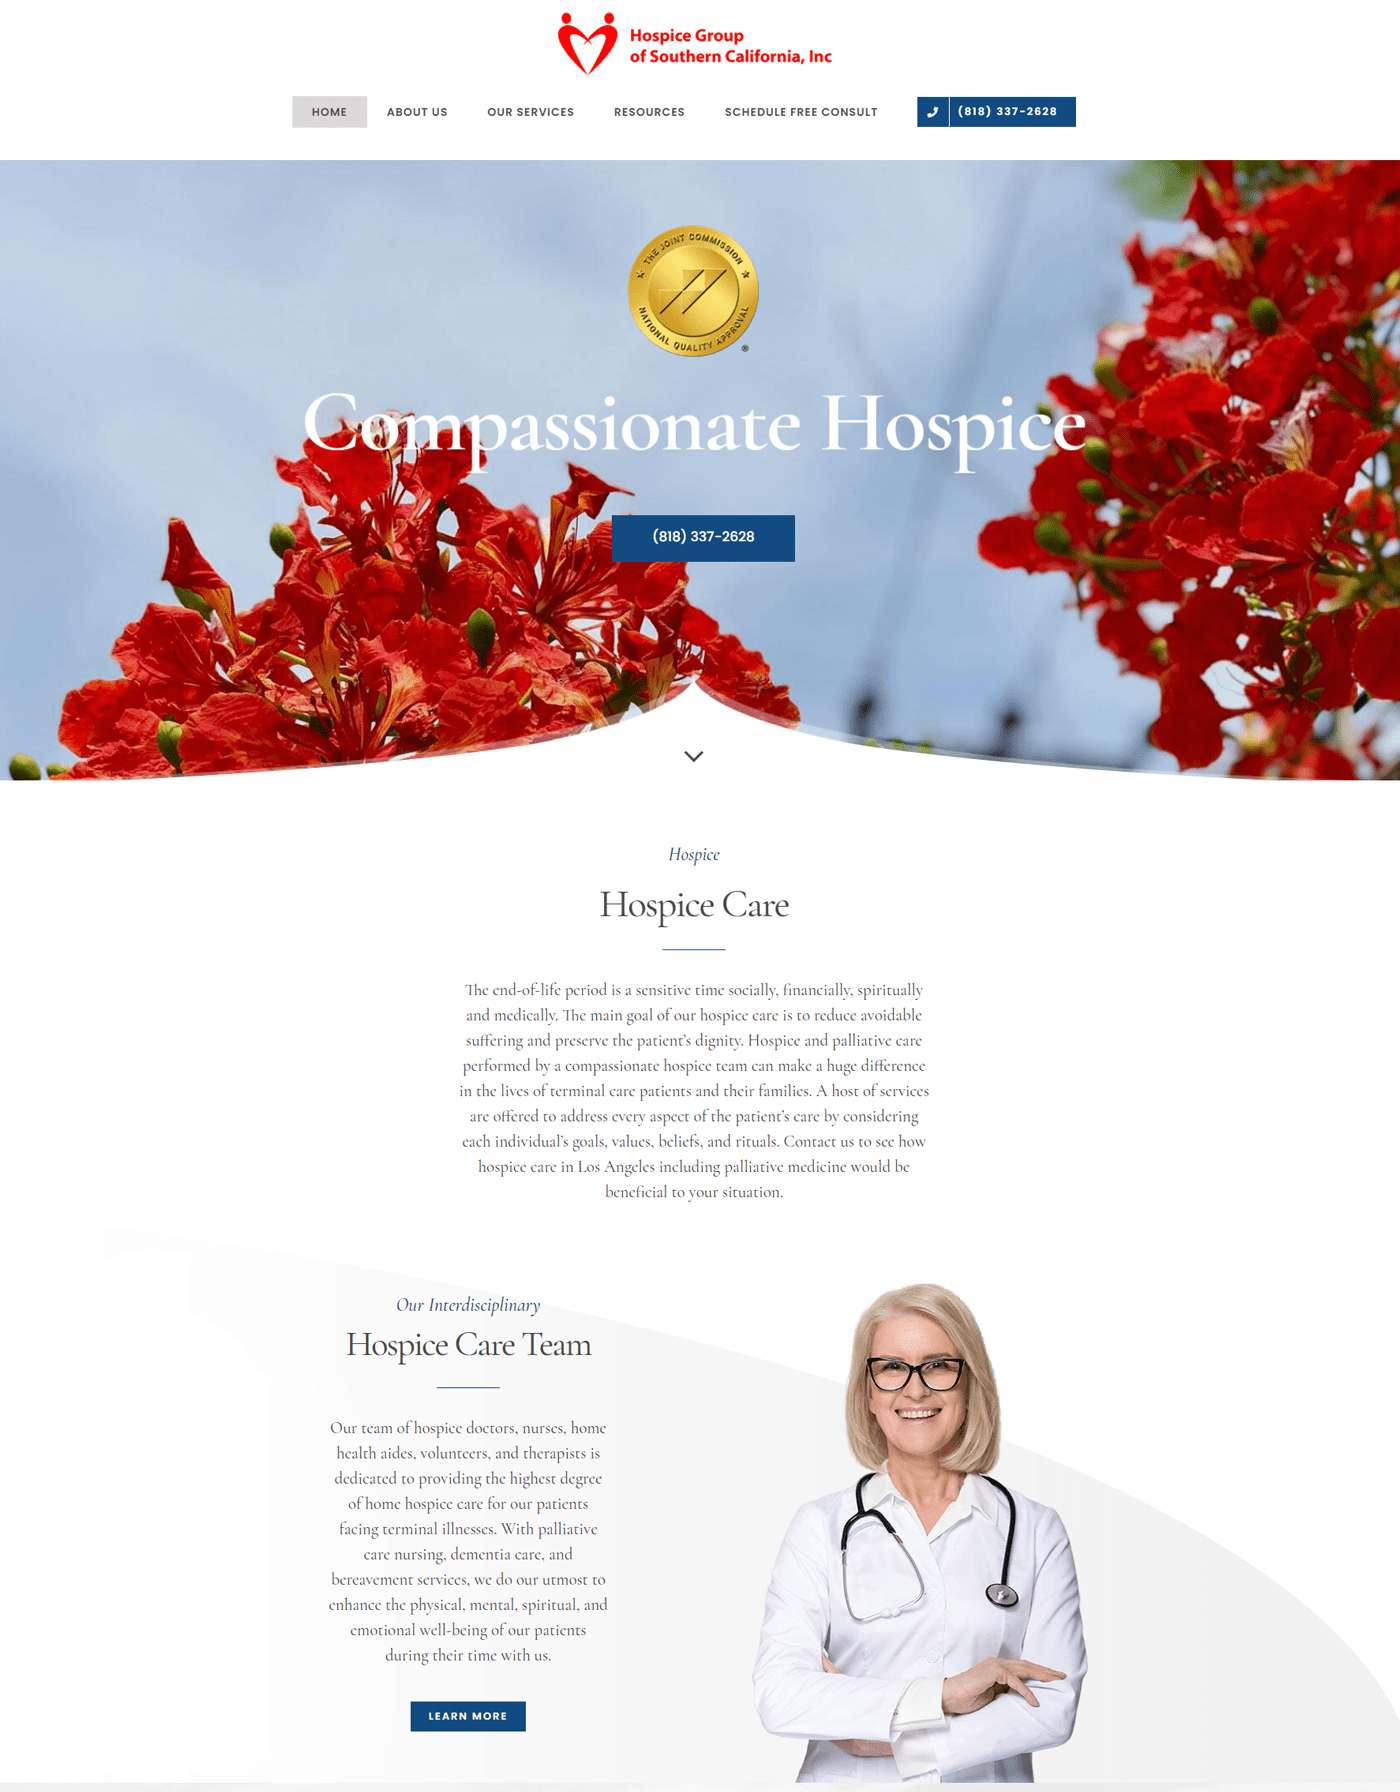 Hospice Group of Southern California